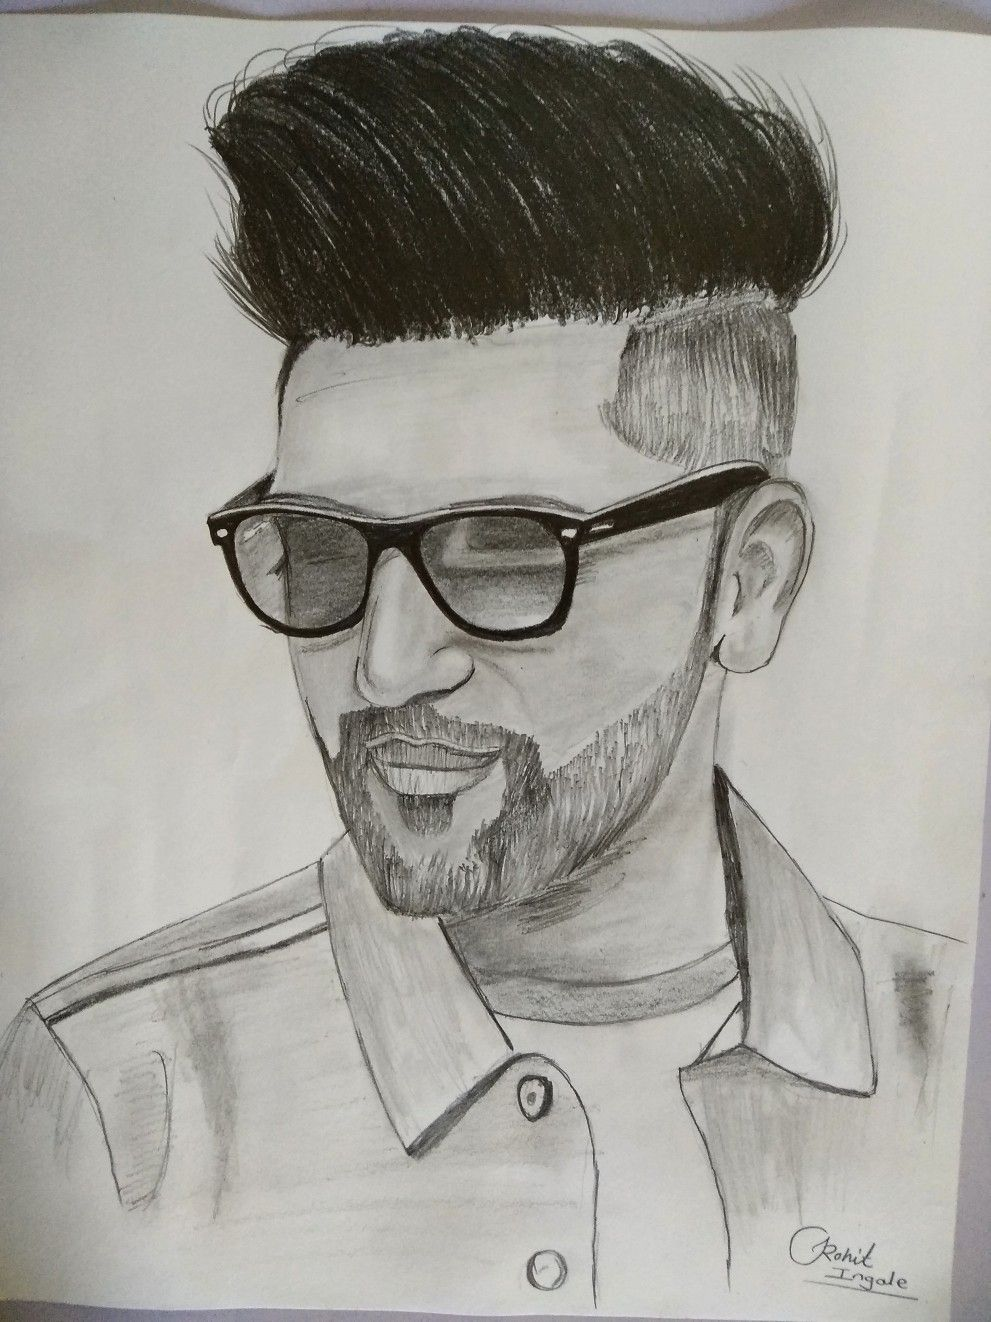 Sketch of guru randhawa love drawings art drawings drawing sketches drawing ideas